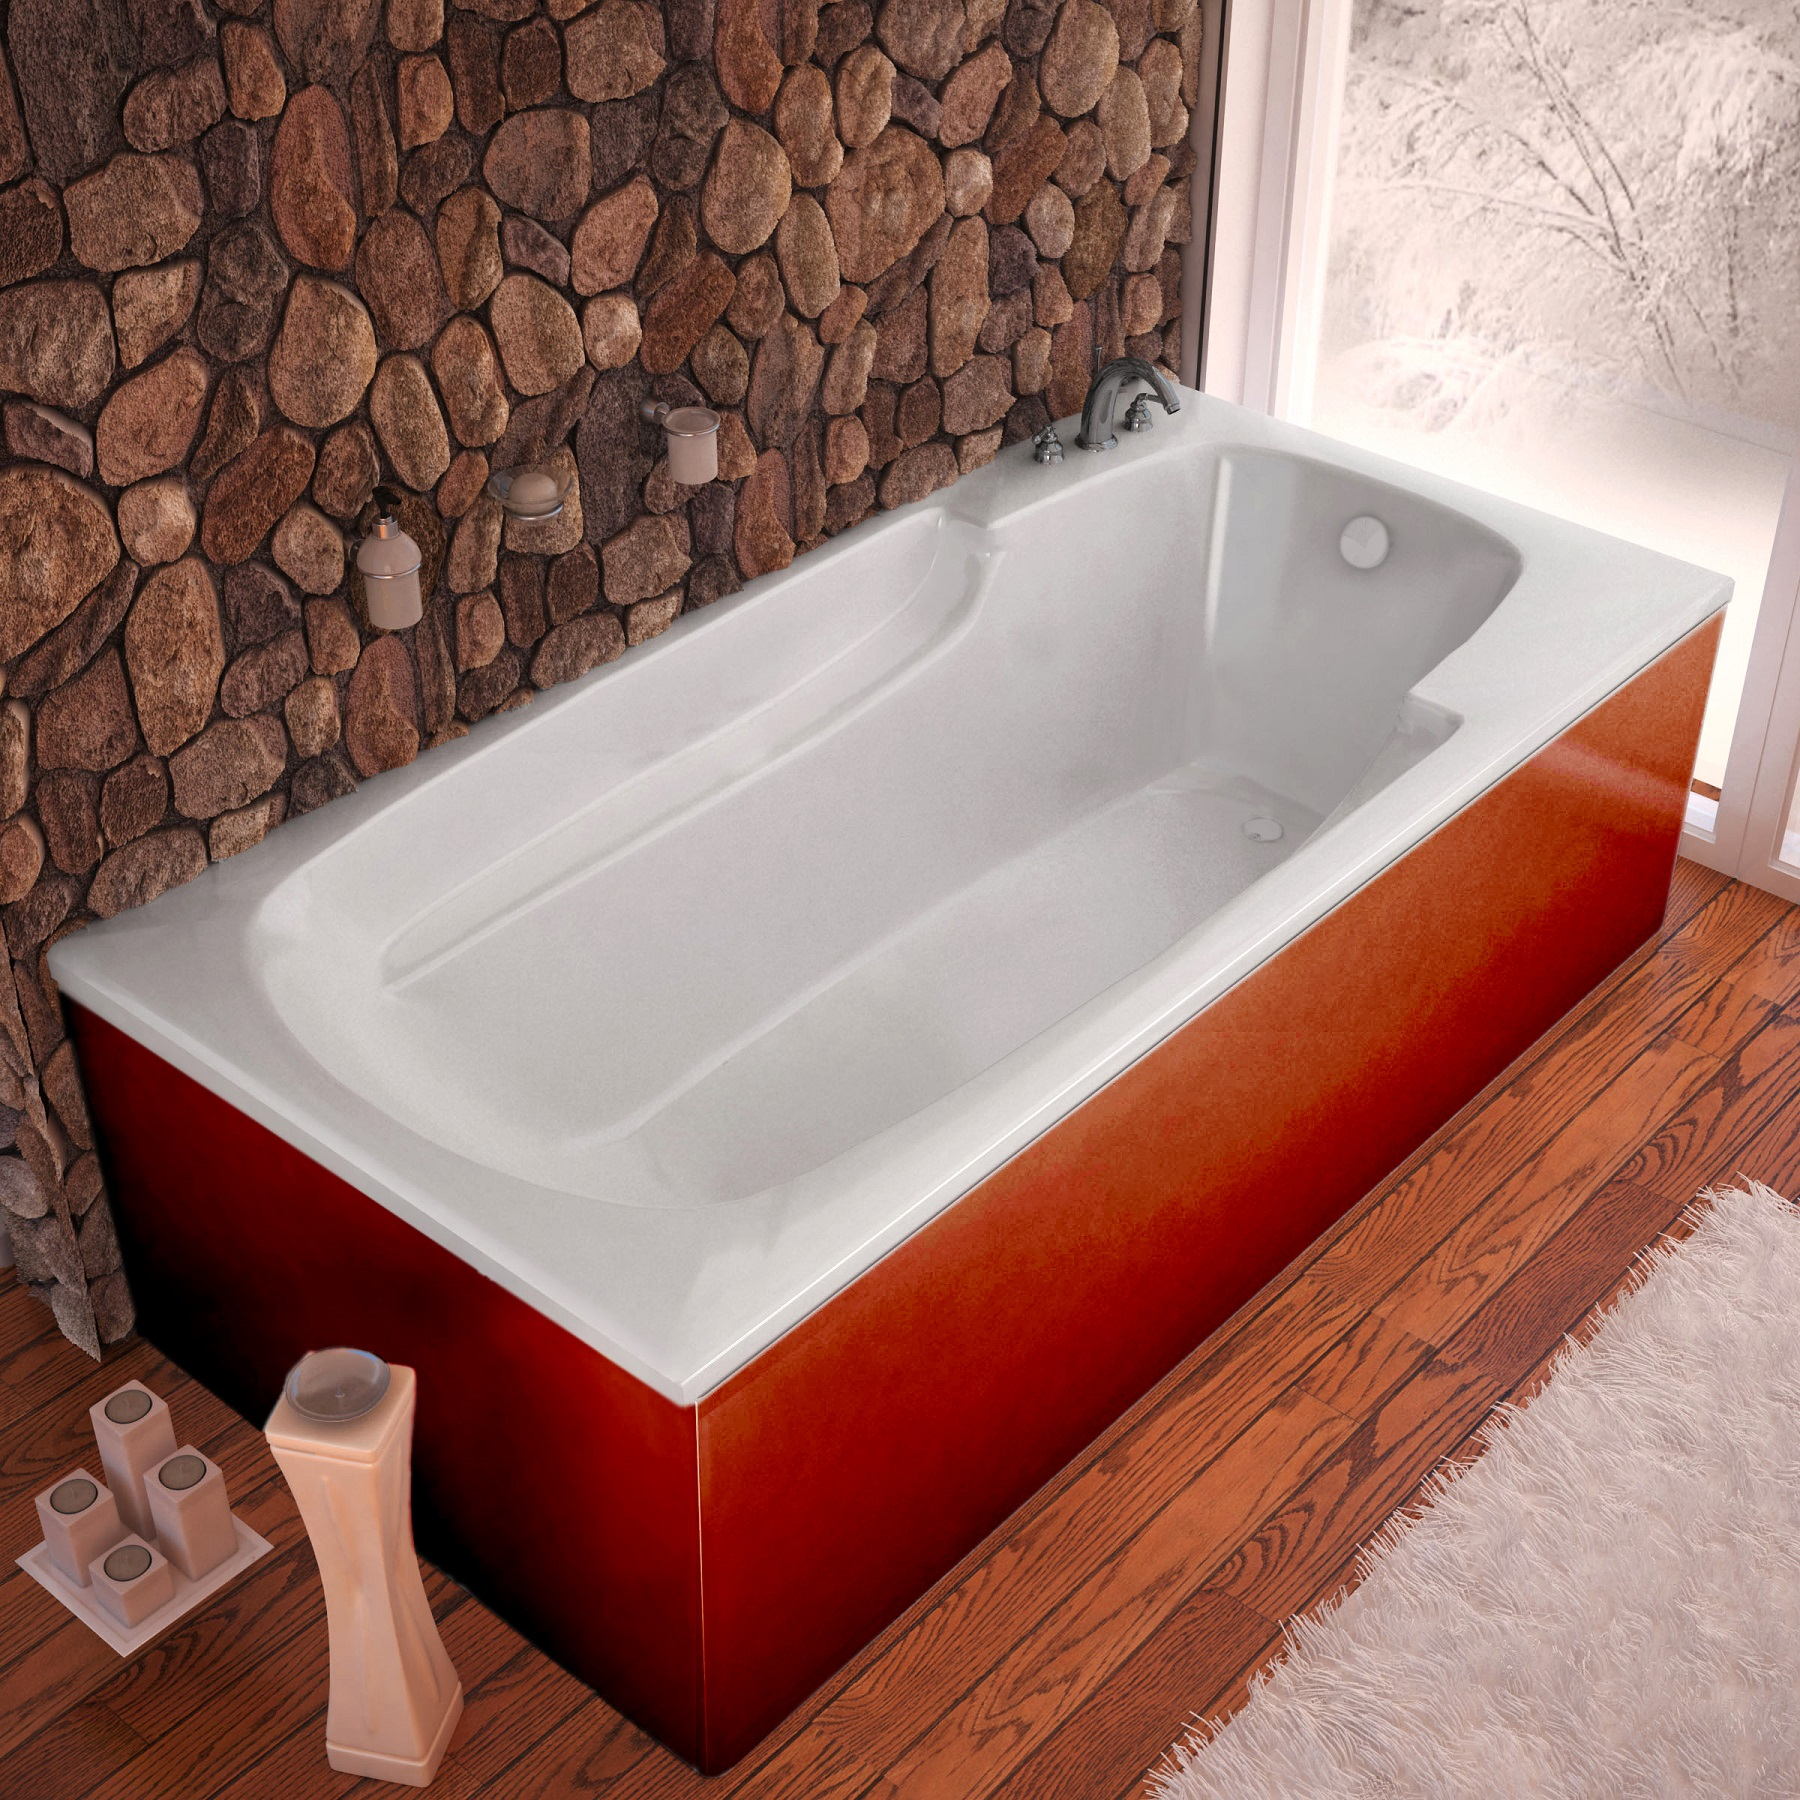 Venzi Aesis 60 x 32 Rectangular Bathtub with Reversible Drain